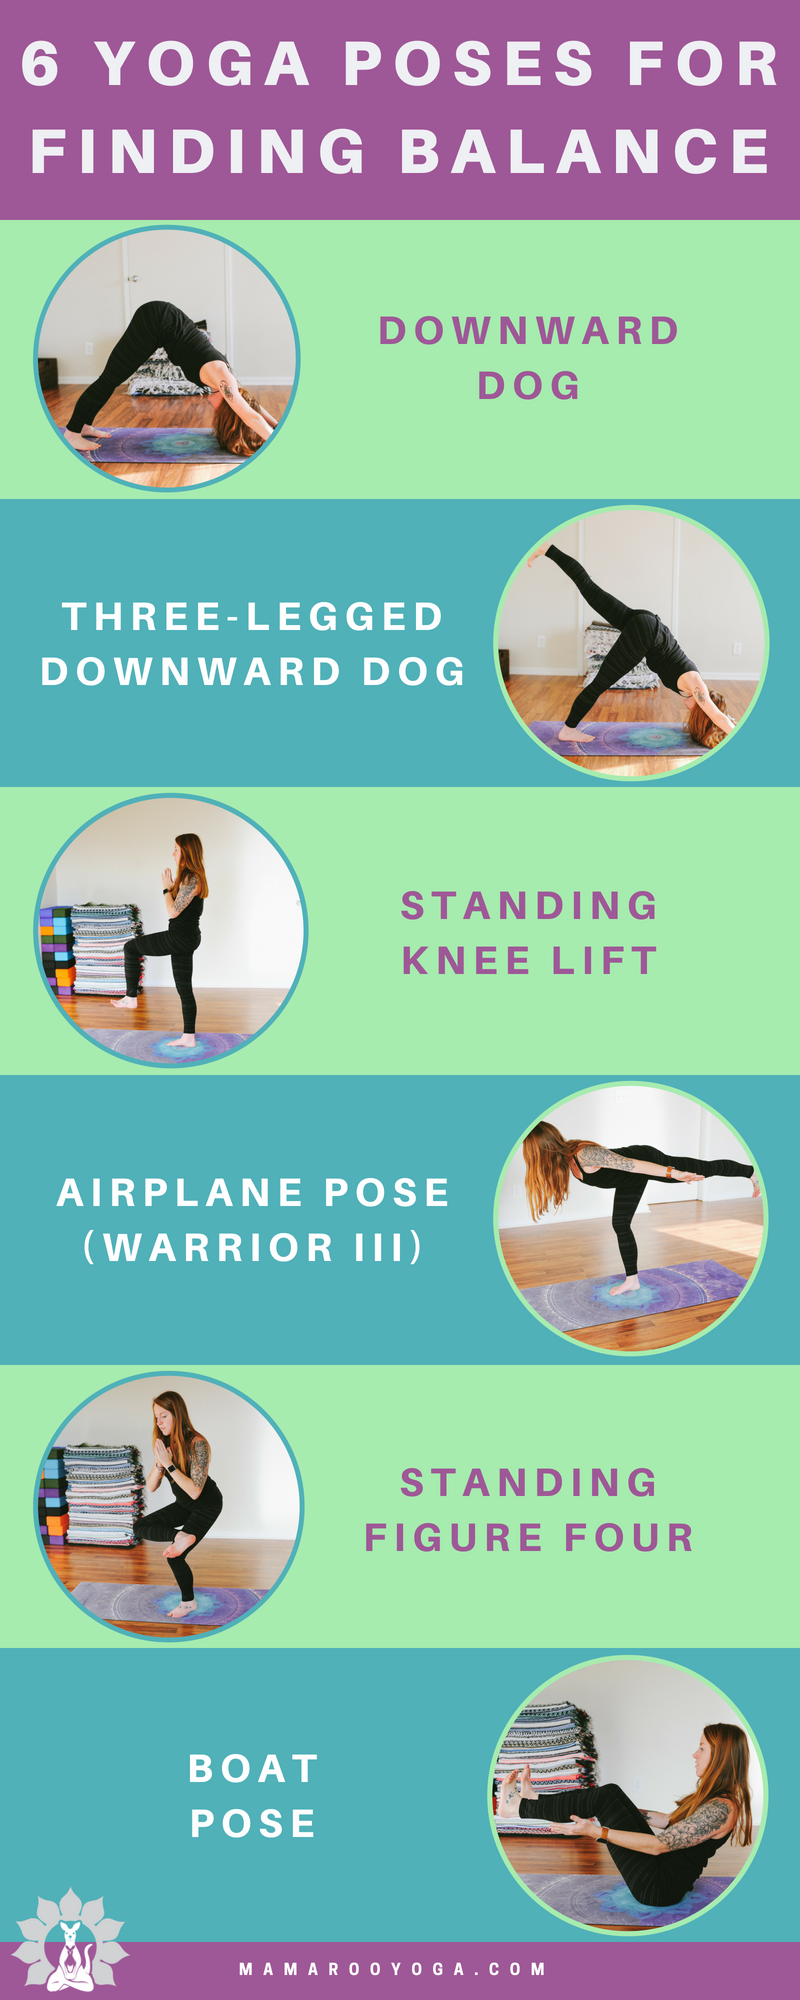 6 yoga poses for finding balance graphic